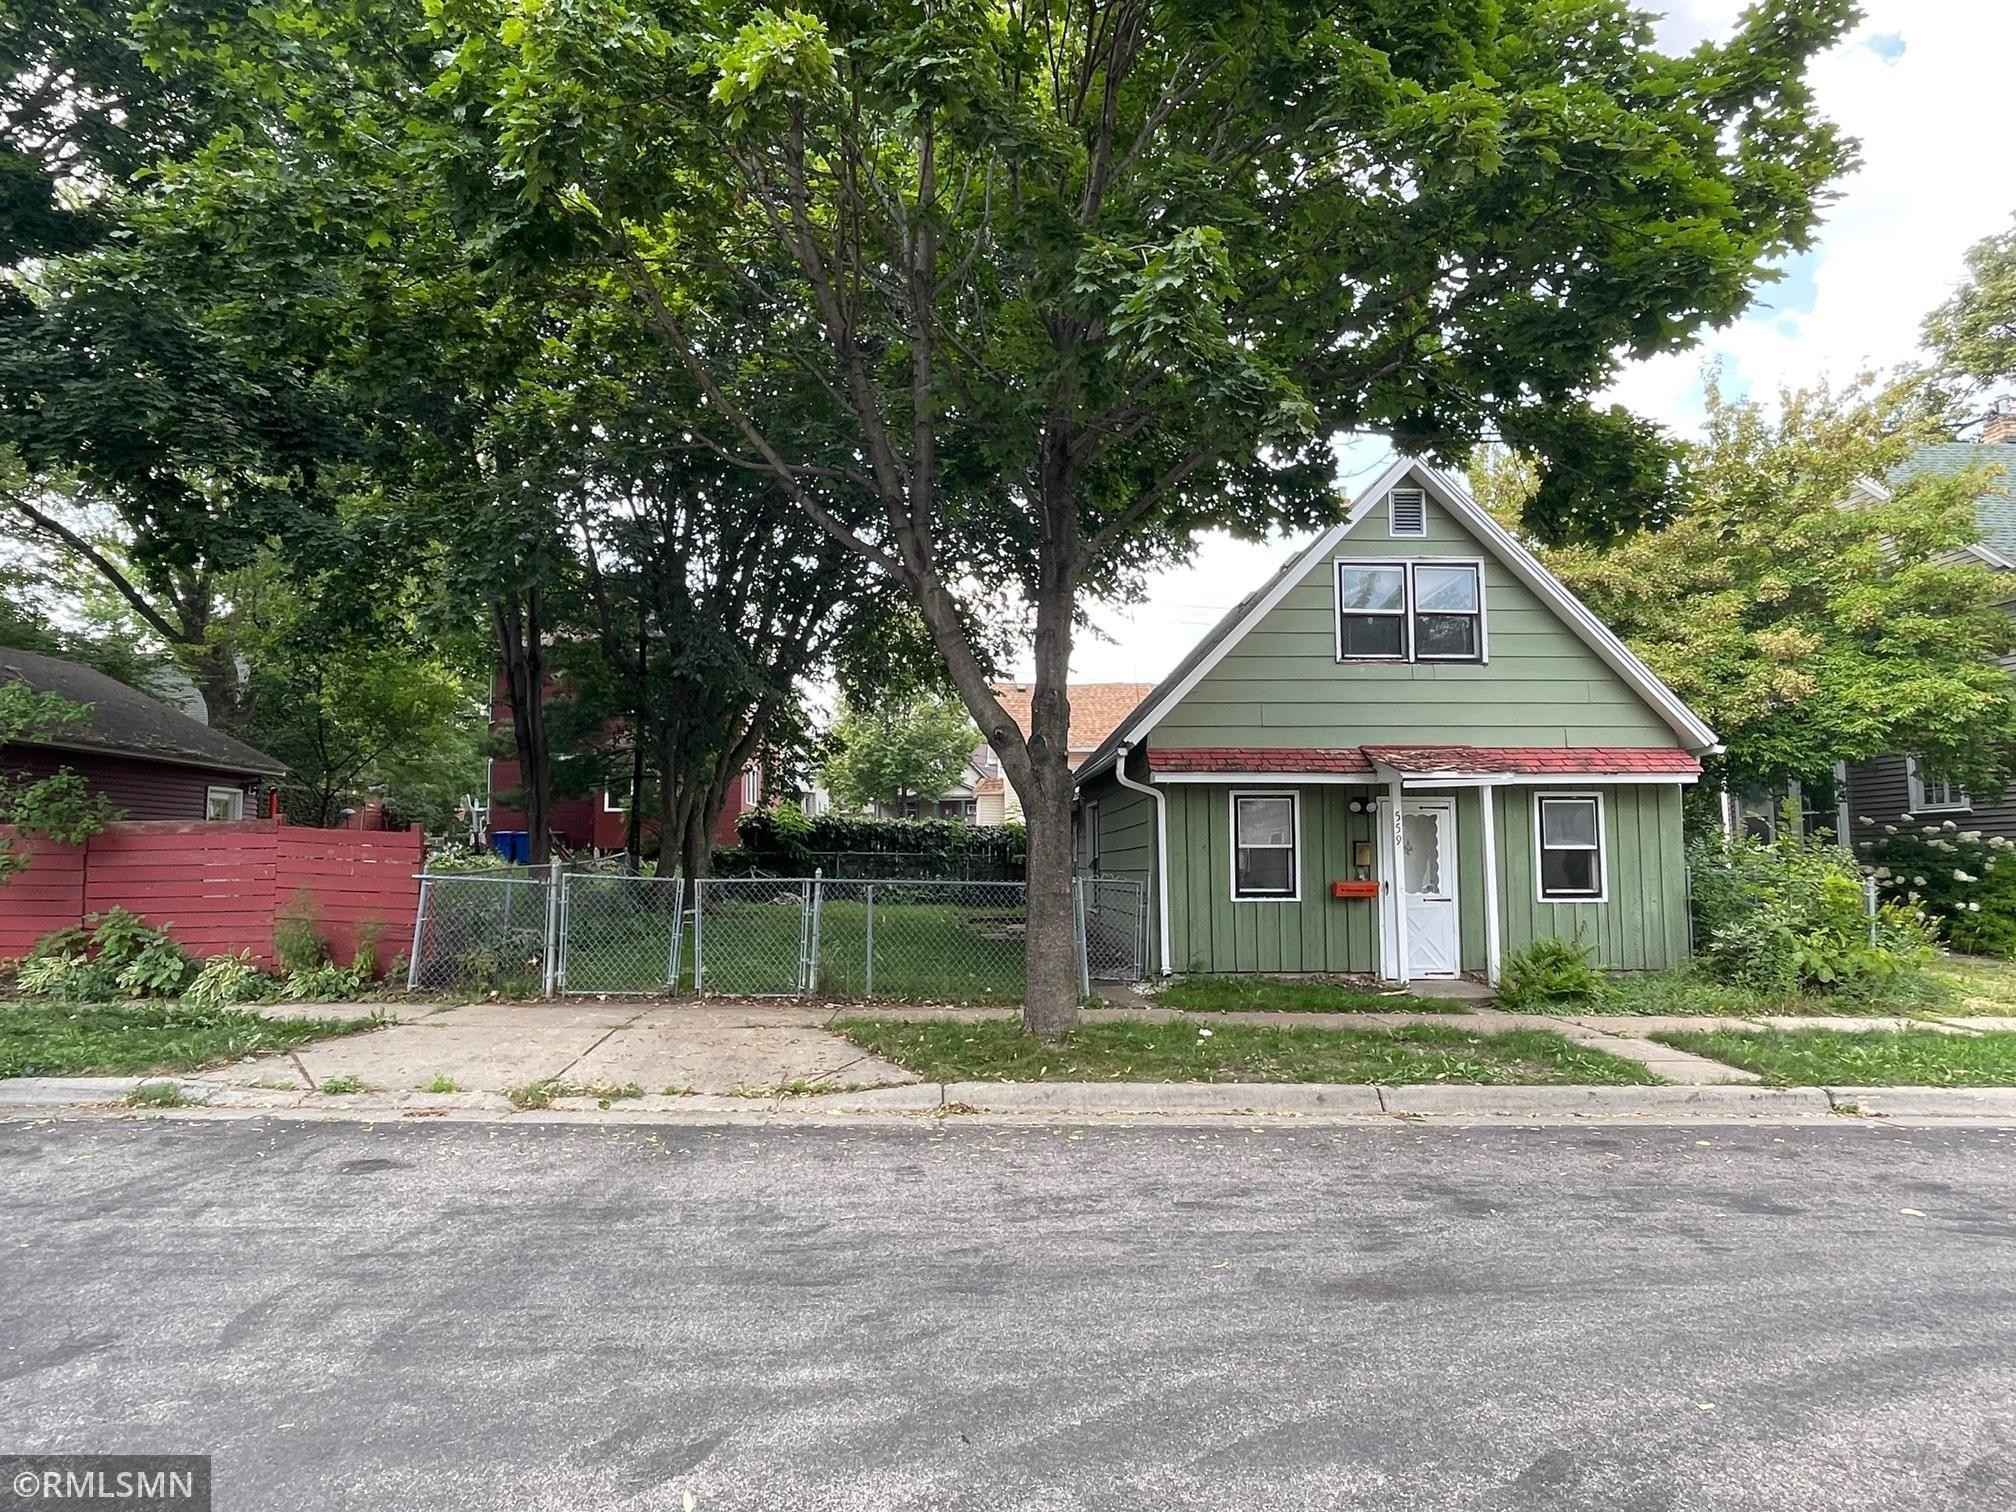 View 1 photos of this _0 bed, _0 bath, and  sqft. land home located at 559 Orleans St, Saint Paul, Minnesota 55107 is Pending for $24,000.